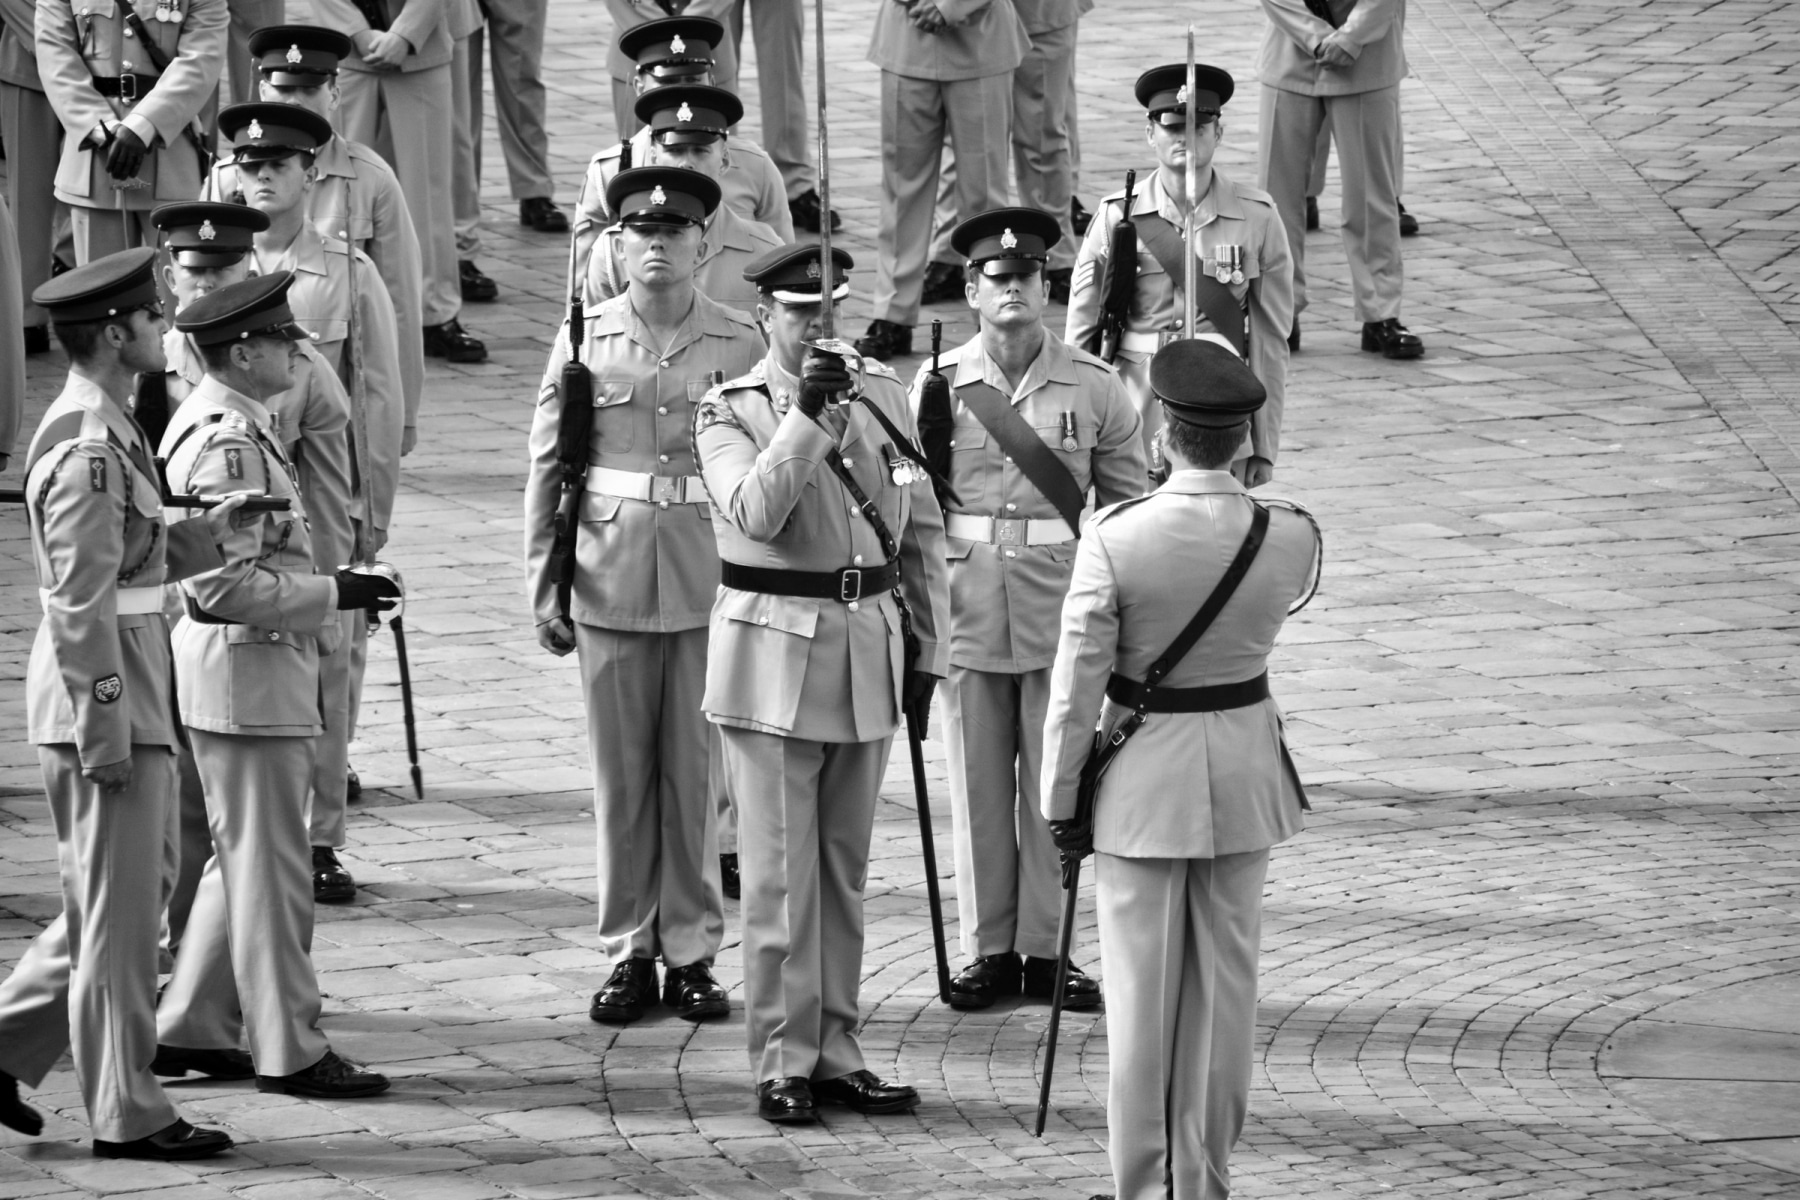 regiment-freedom-of-city-0240-bw_15253257470_o